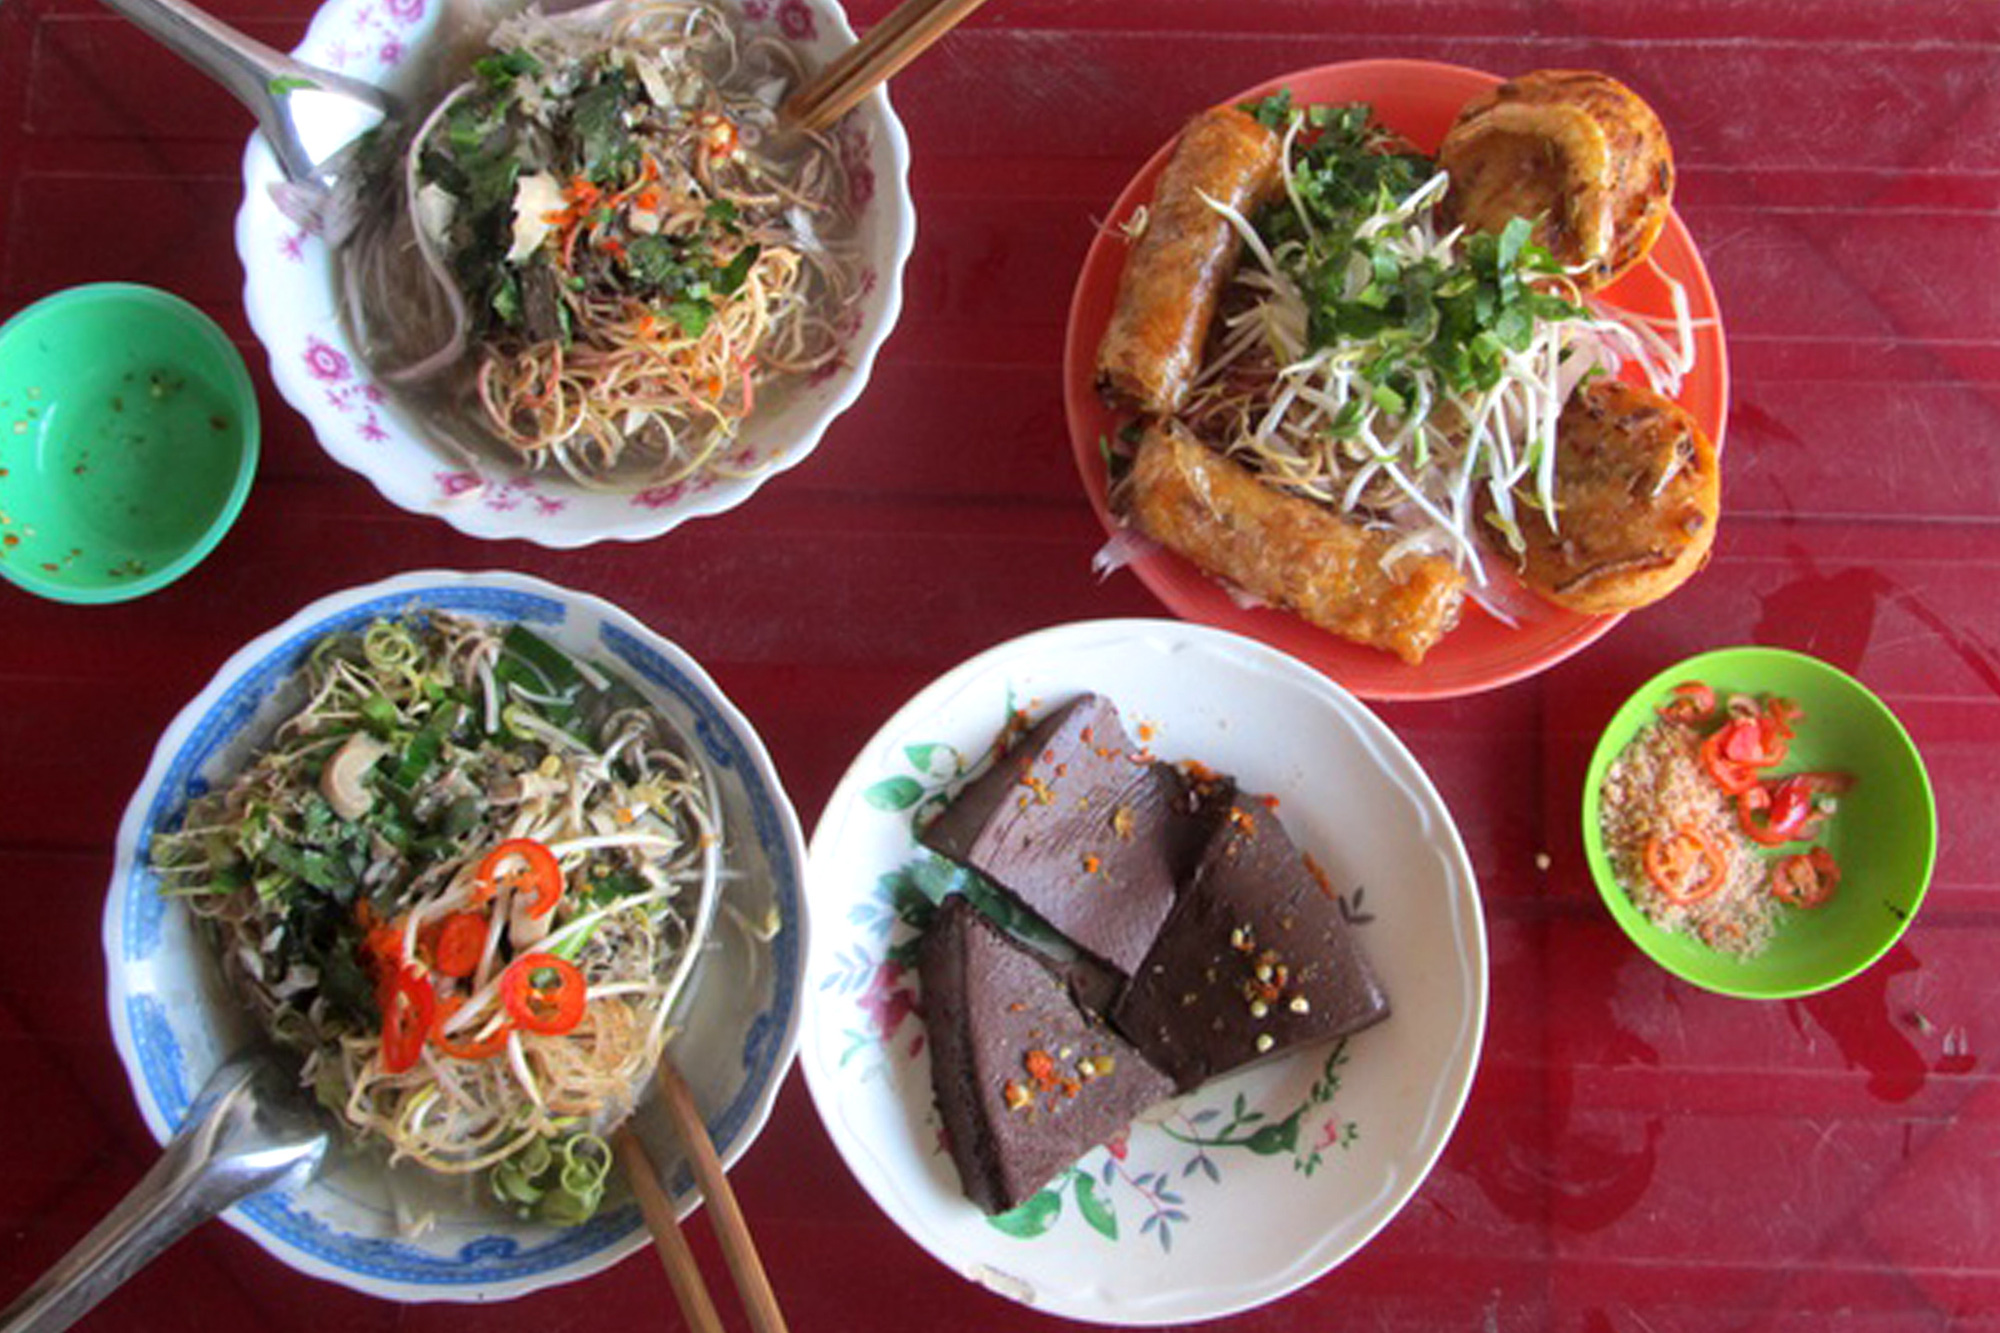 Two servings of Tra Vinh-style 'bun nuoc leo' (noodle soup) and side dishes are served at an eatery in Tra Vinh City, Tra Vinh Province, Vietnam. Photo: Van Thanh / Tuoi Tre